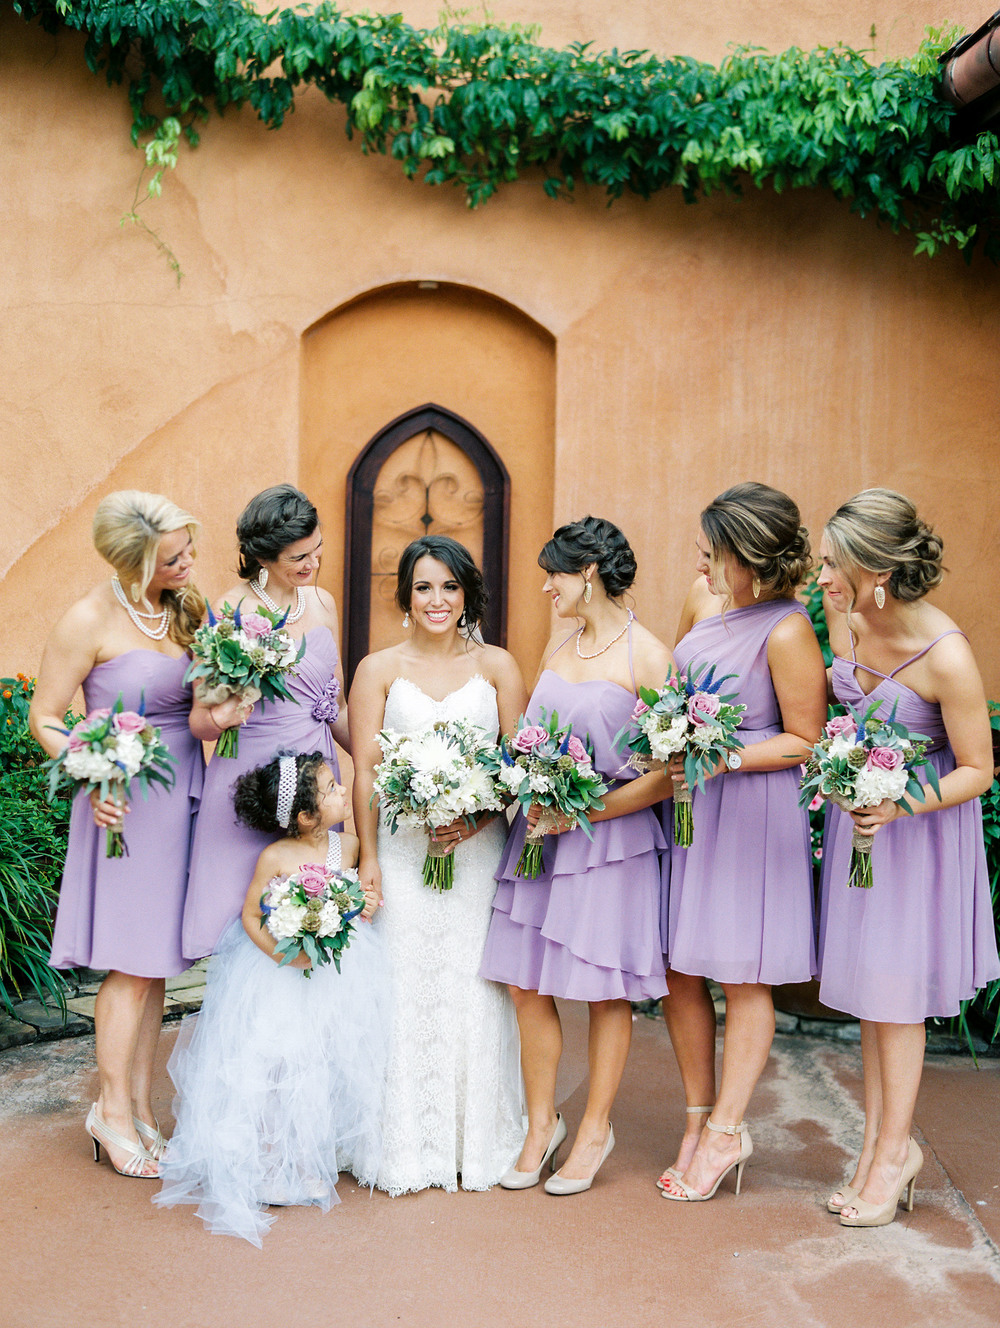 Dana Fernandez Photography Agave Road Agave Estates Houston Texas Wedding Photographer Destination Southwest Film-32.jpg